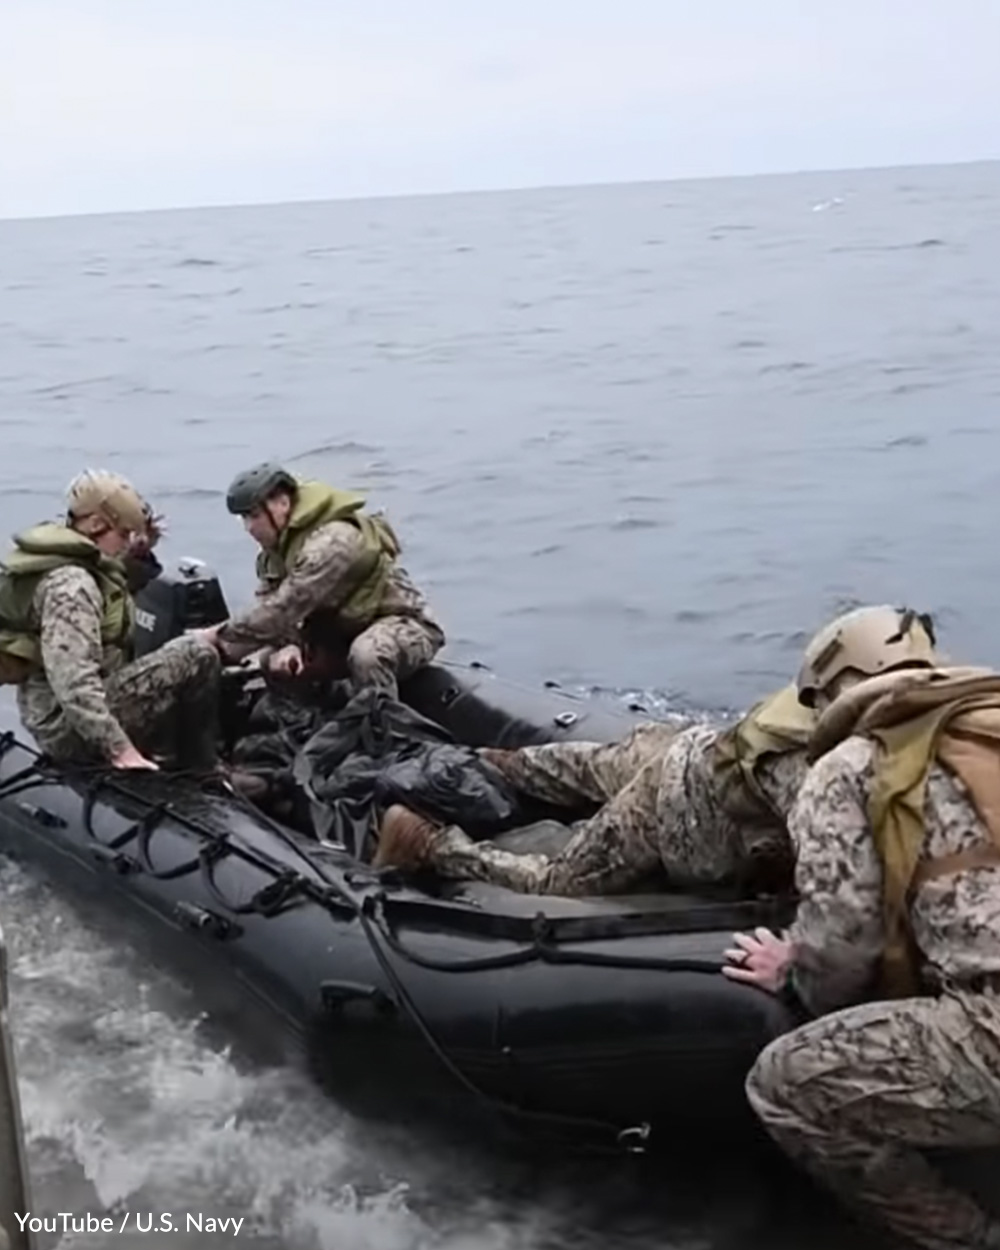 Marine Recon and MEUs as well as the sailors aboard these ships work together seamlessly.